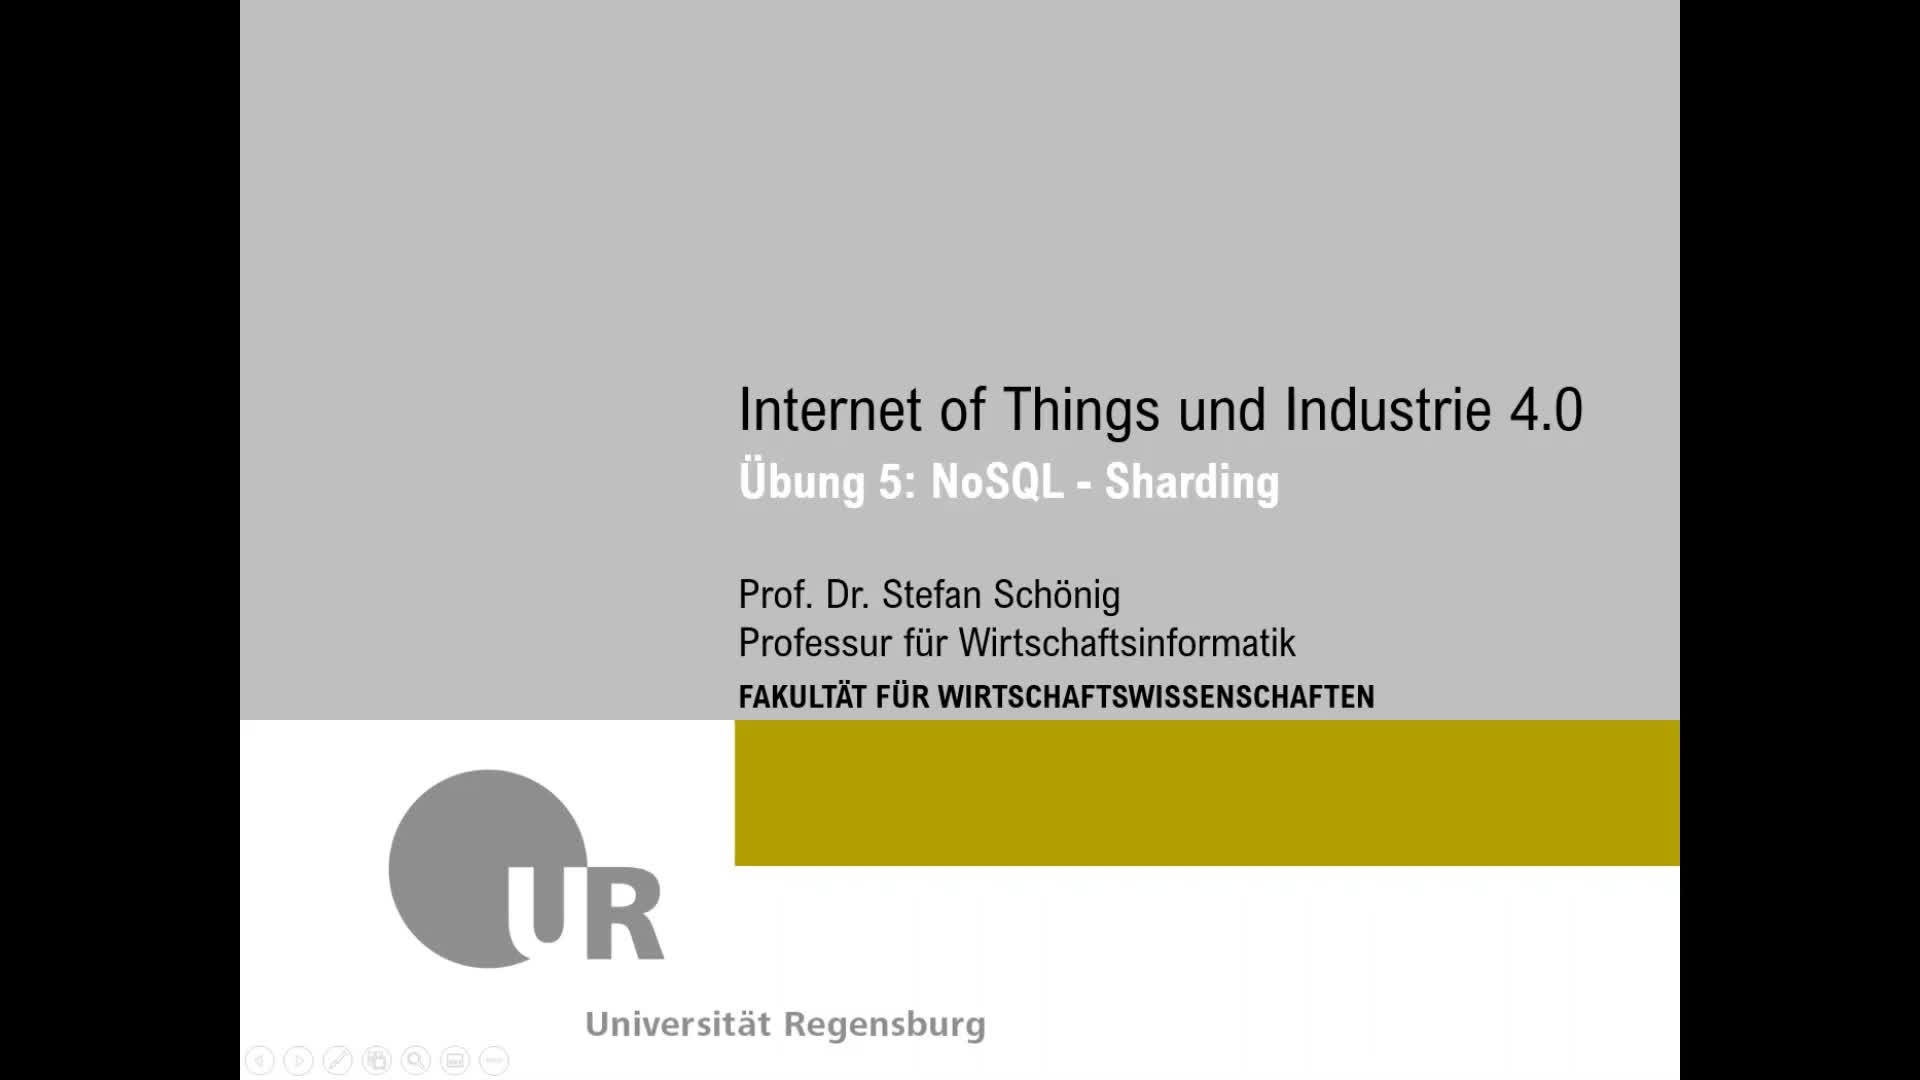 SS 2020 - Internet of Things und Industrie 4.0 - Übung 5 (NoSQL - Sharding)